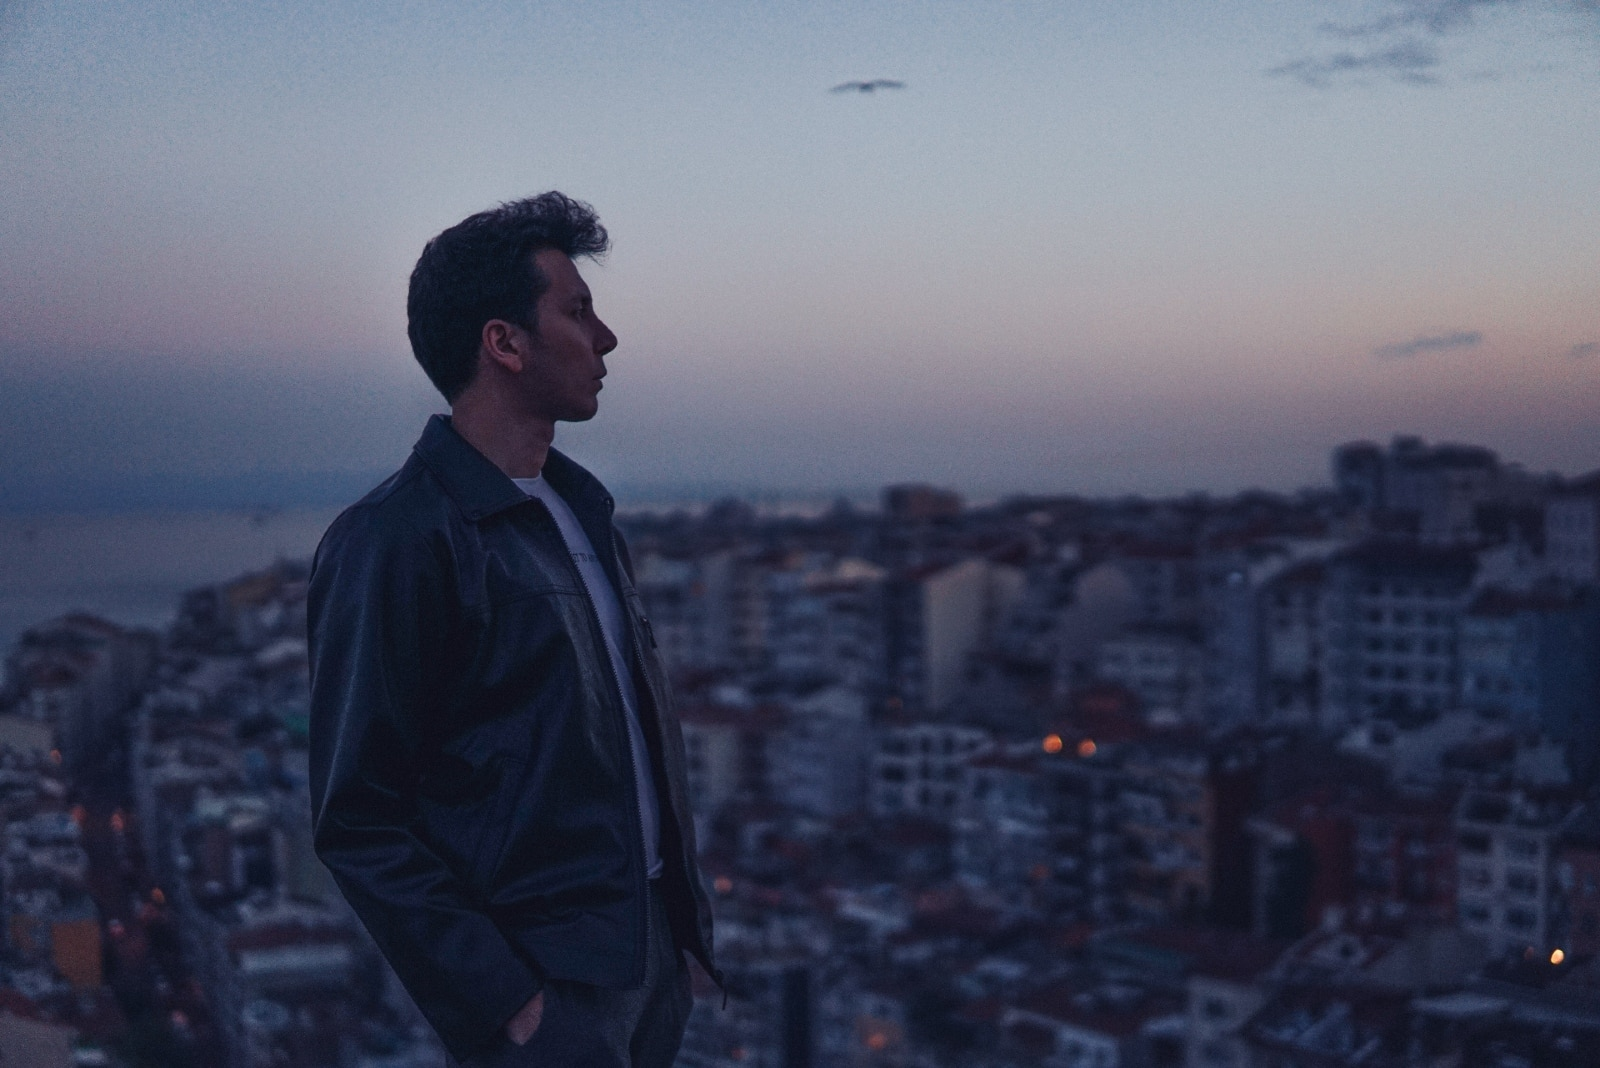 man in black jacket standing on rooftop during sunset